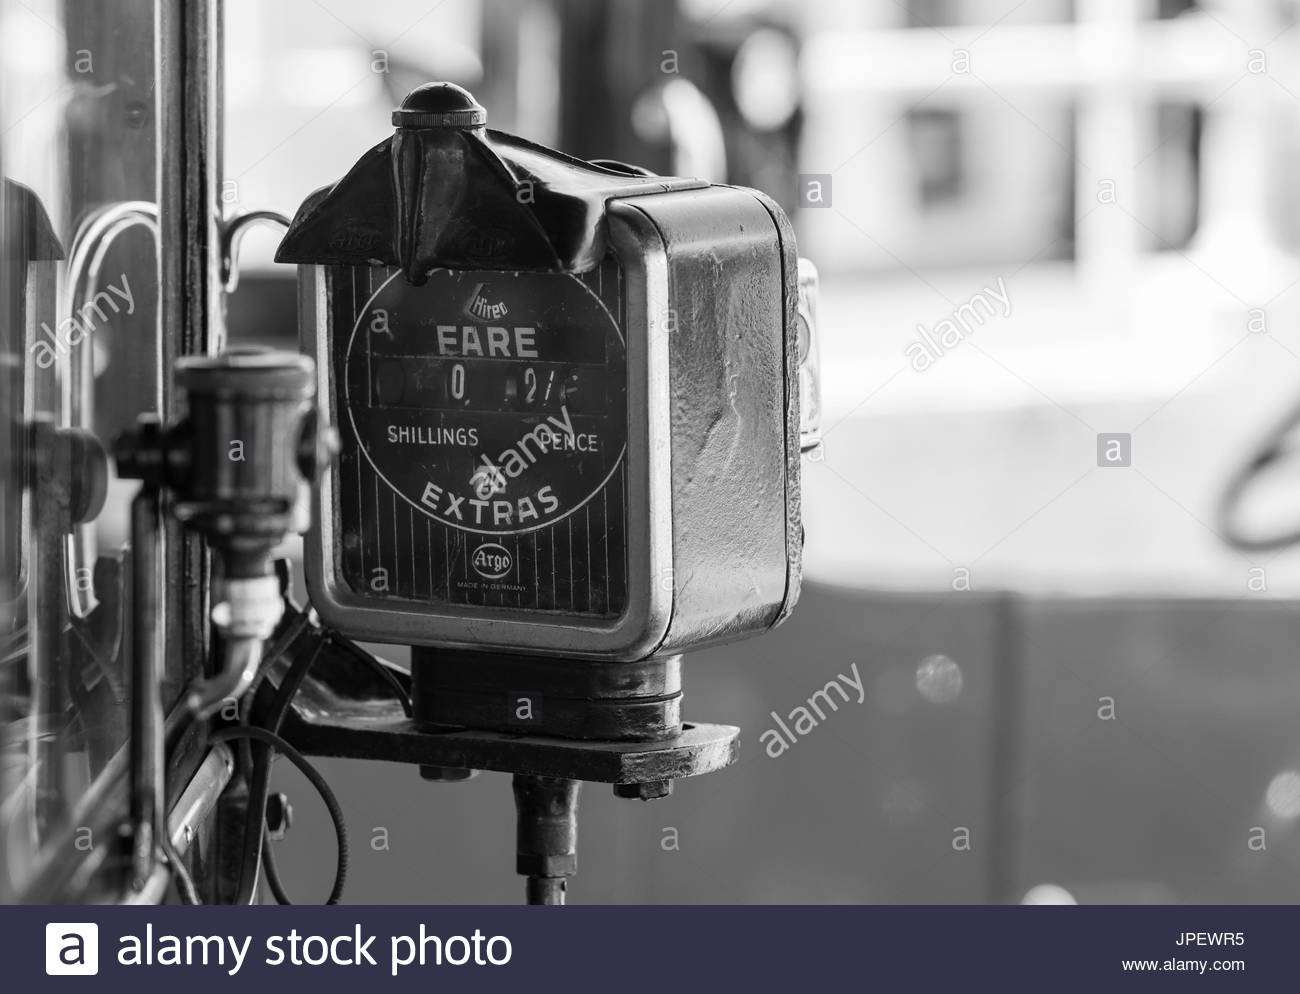 Argo Taximeter from the 1930s fitted to a vintage London taxicab. Taxi fare meter fitted to a vantage Austin Six taxi cab in the UK. Black and white. - Stock Image